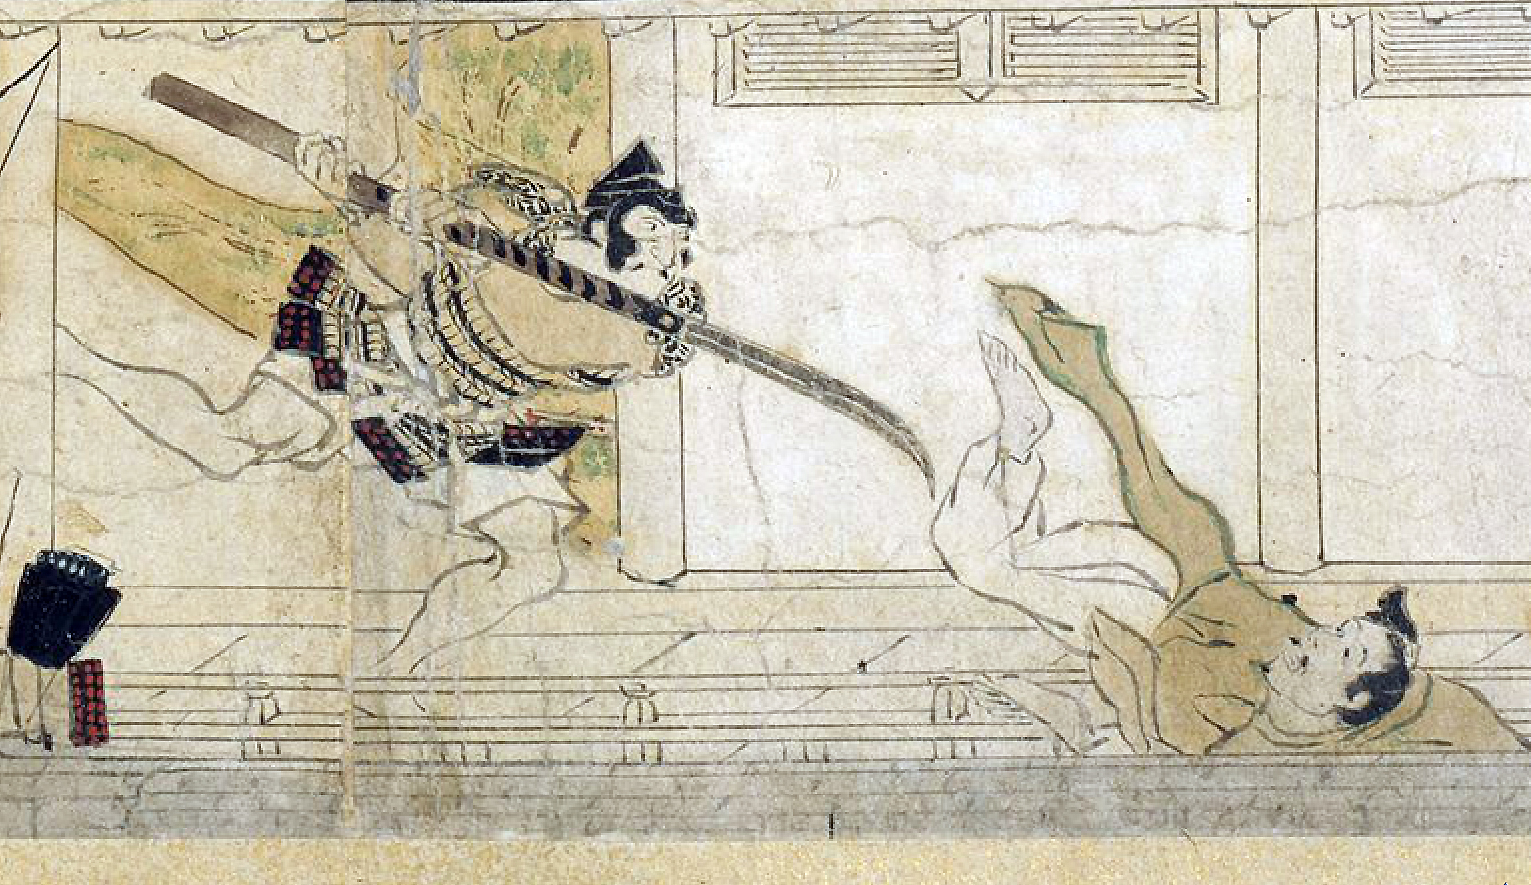 Night Attack on the Sanjô Palace (detail lower center), Illustrated Scrolls of the Events of the Heiji Era (Heiji monogatari emaki) Japanese, Kamakura period, second half of the 13th century, 45.9 x 774.5 x 7.6 cm (Museum of Fine Arts, Boston)